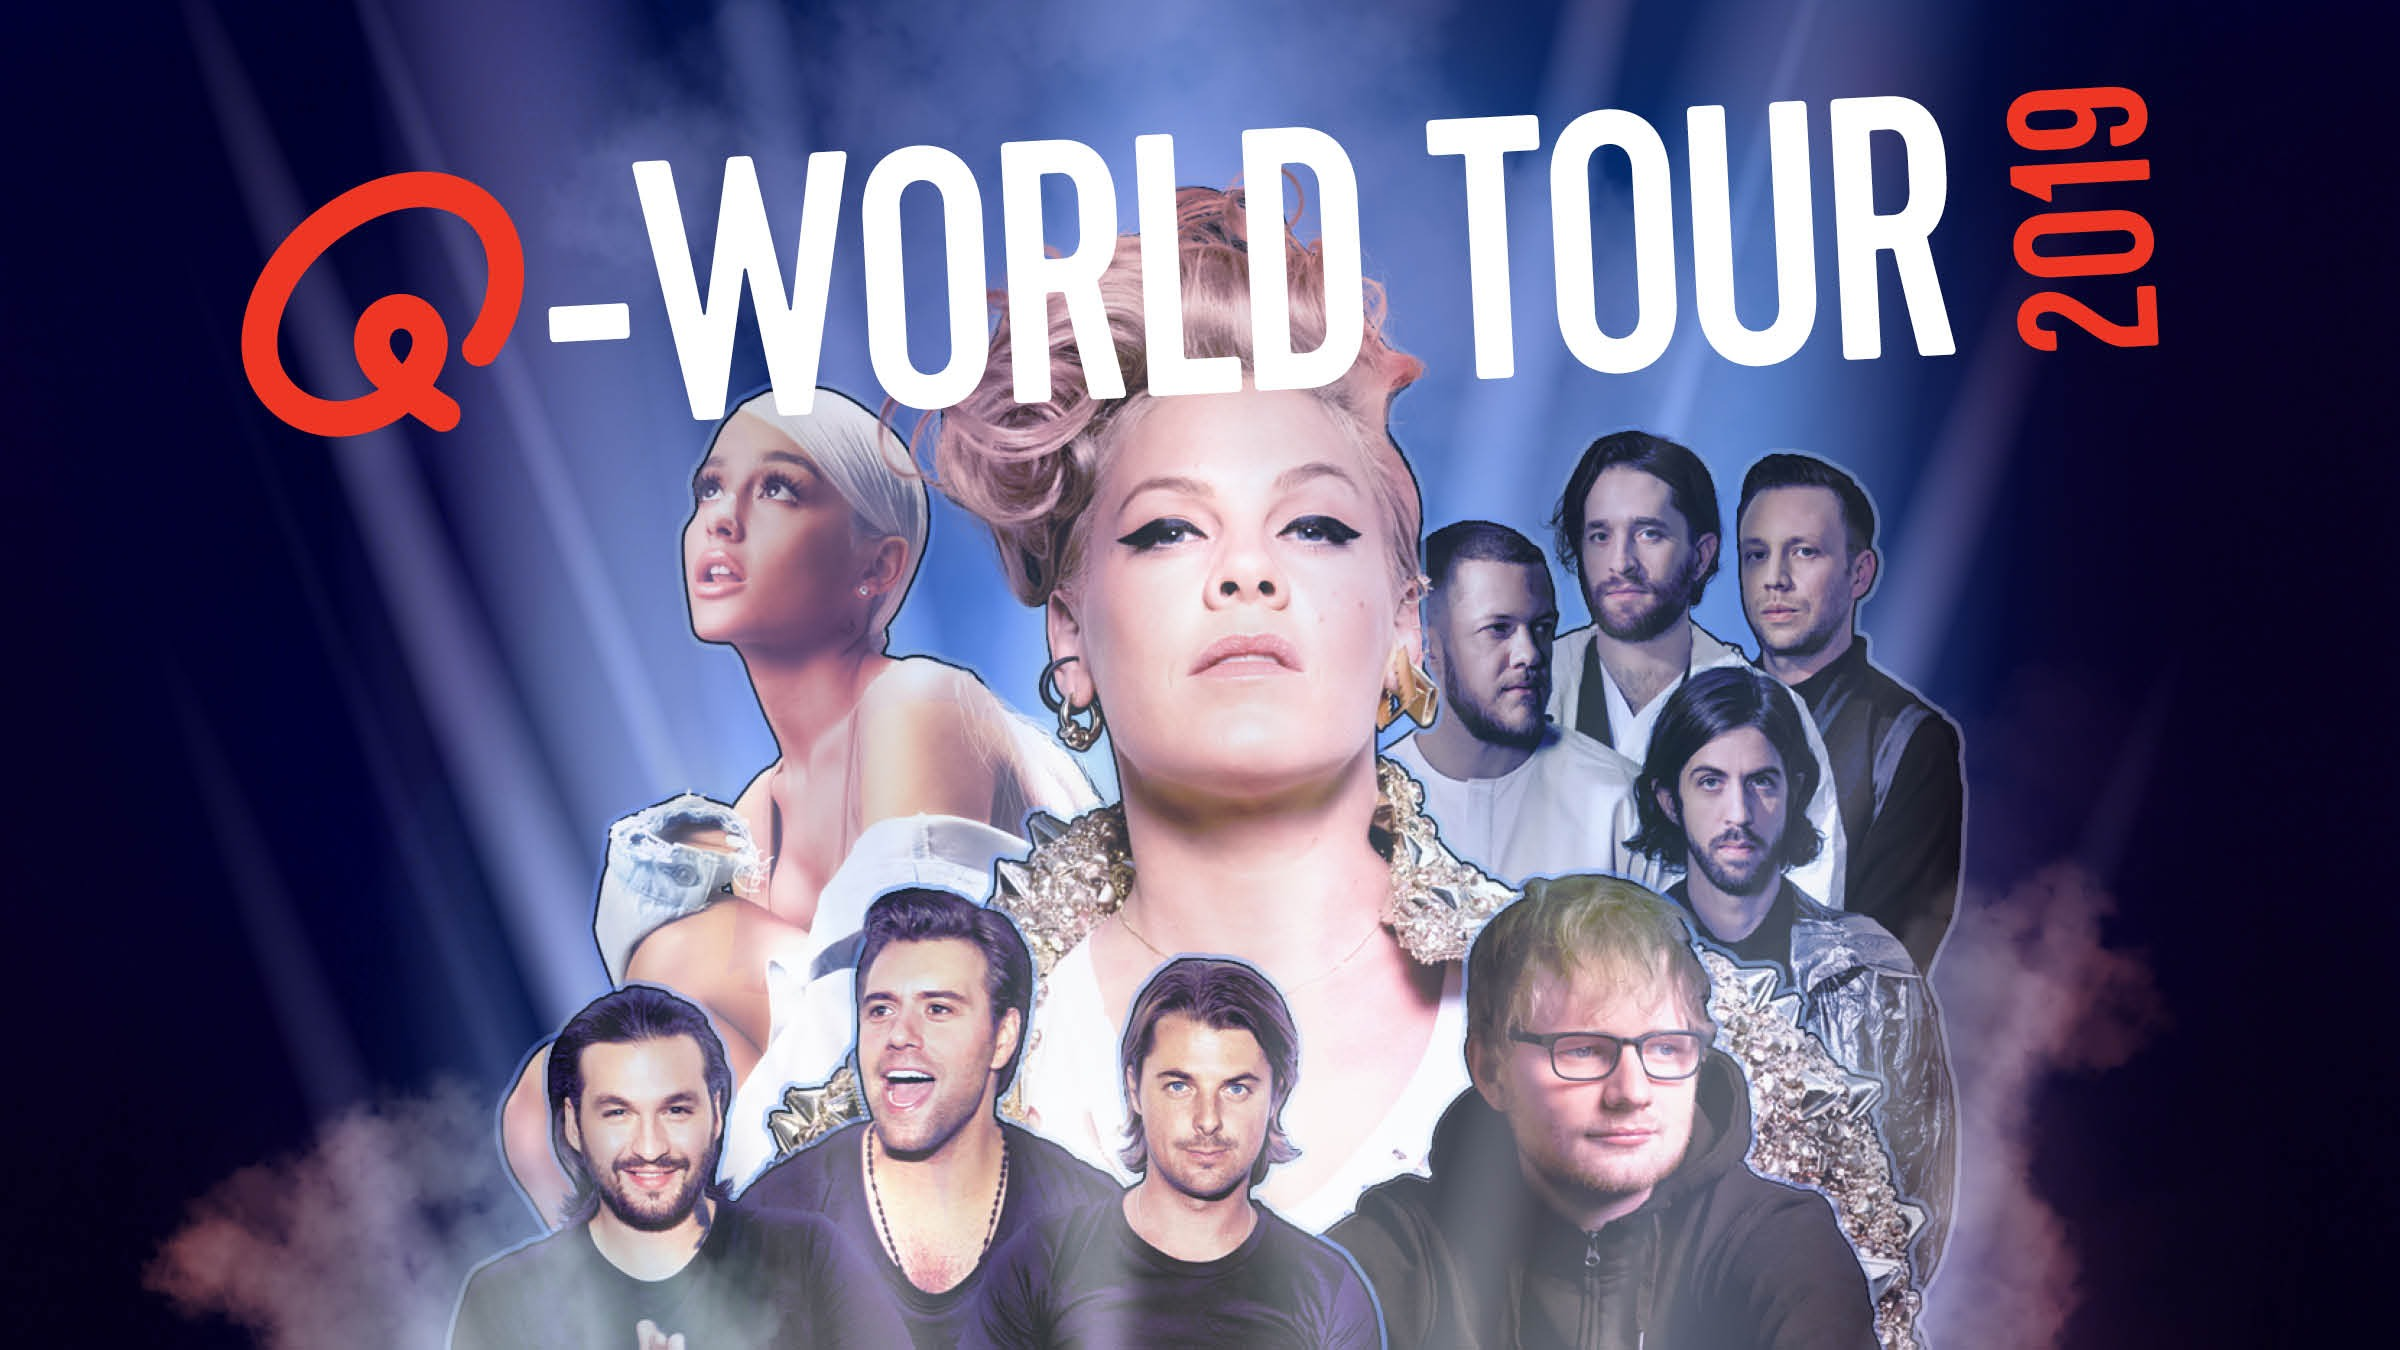 Q world tour